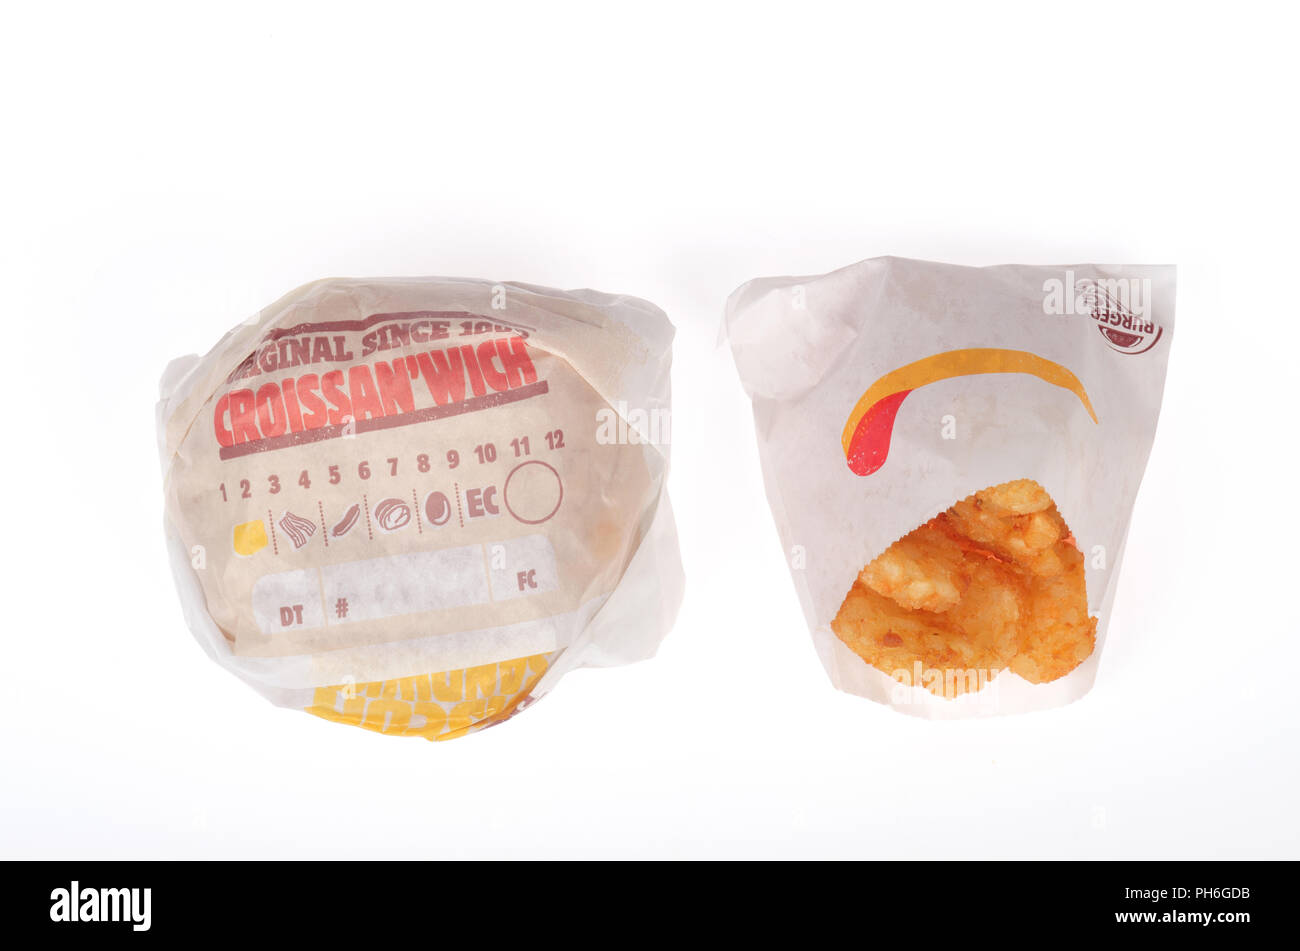 Burger King sausage, egg and cheese Croissan'wich and hash browns in wrappers on white background - Stock Image